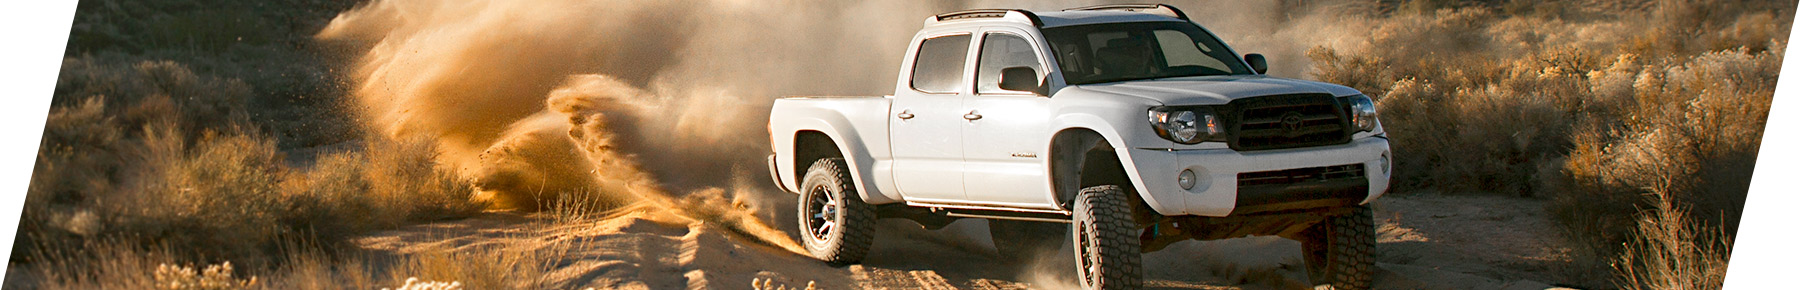 2005-2015 Toyota Tacoma Accessories & Performance Parts